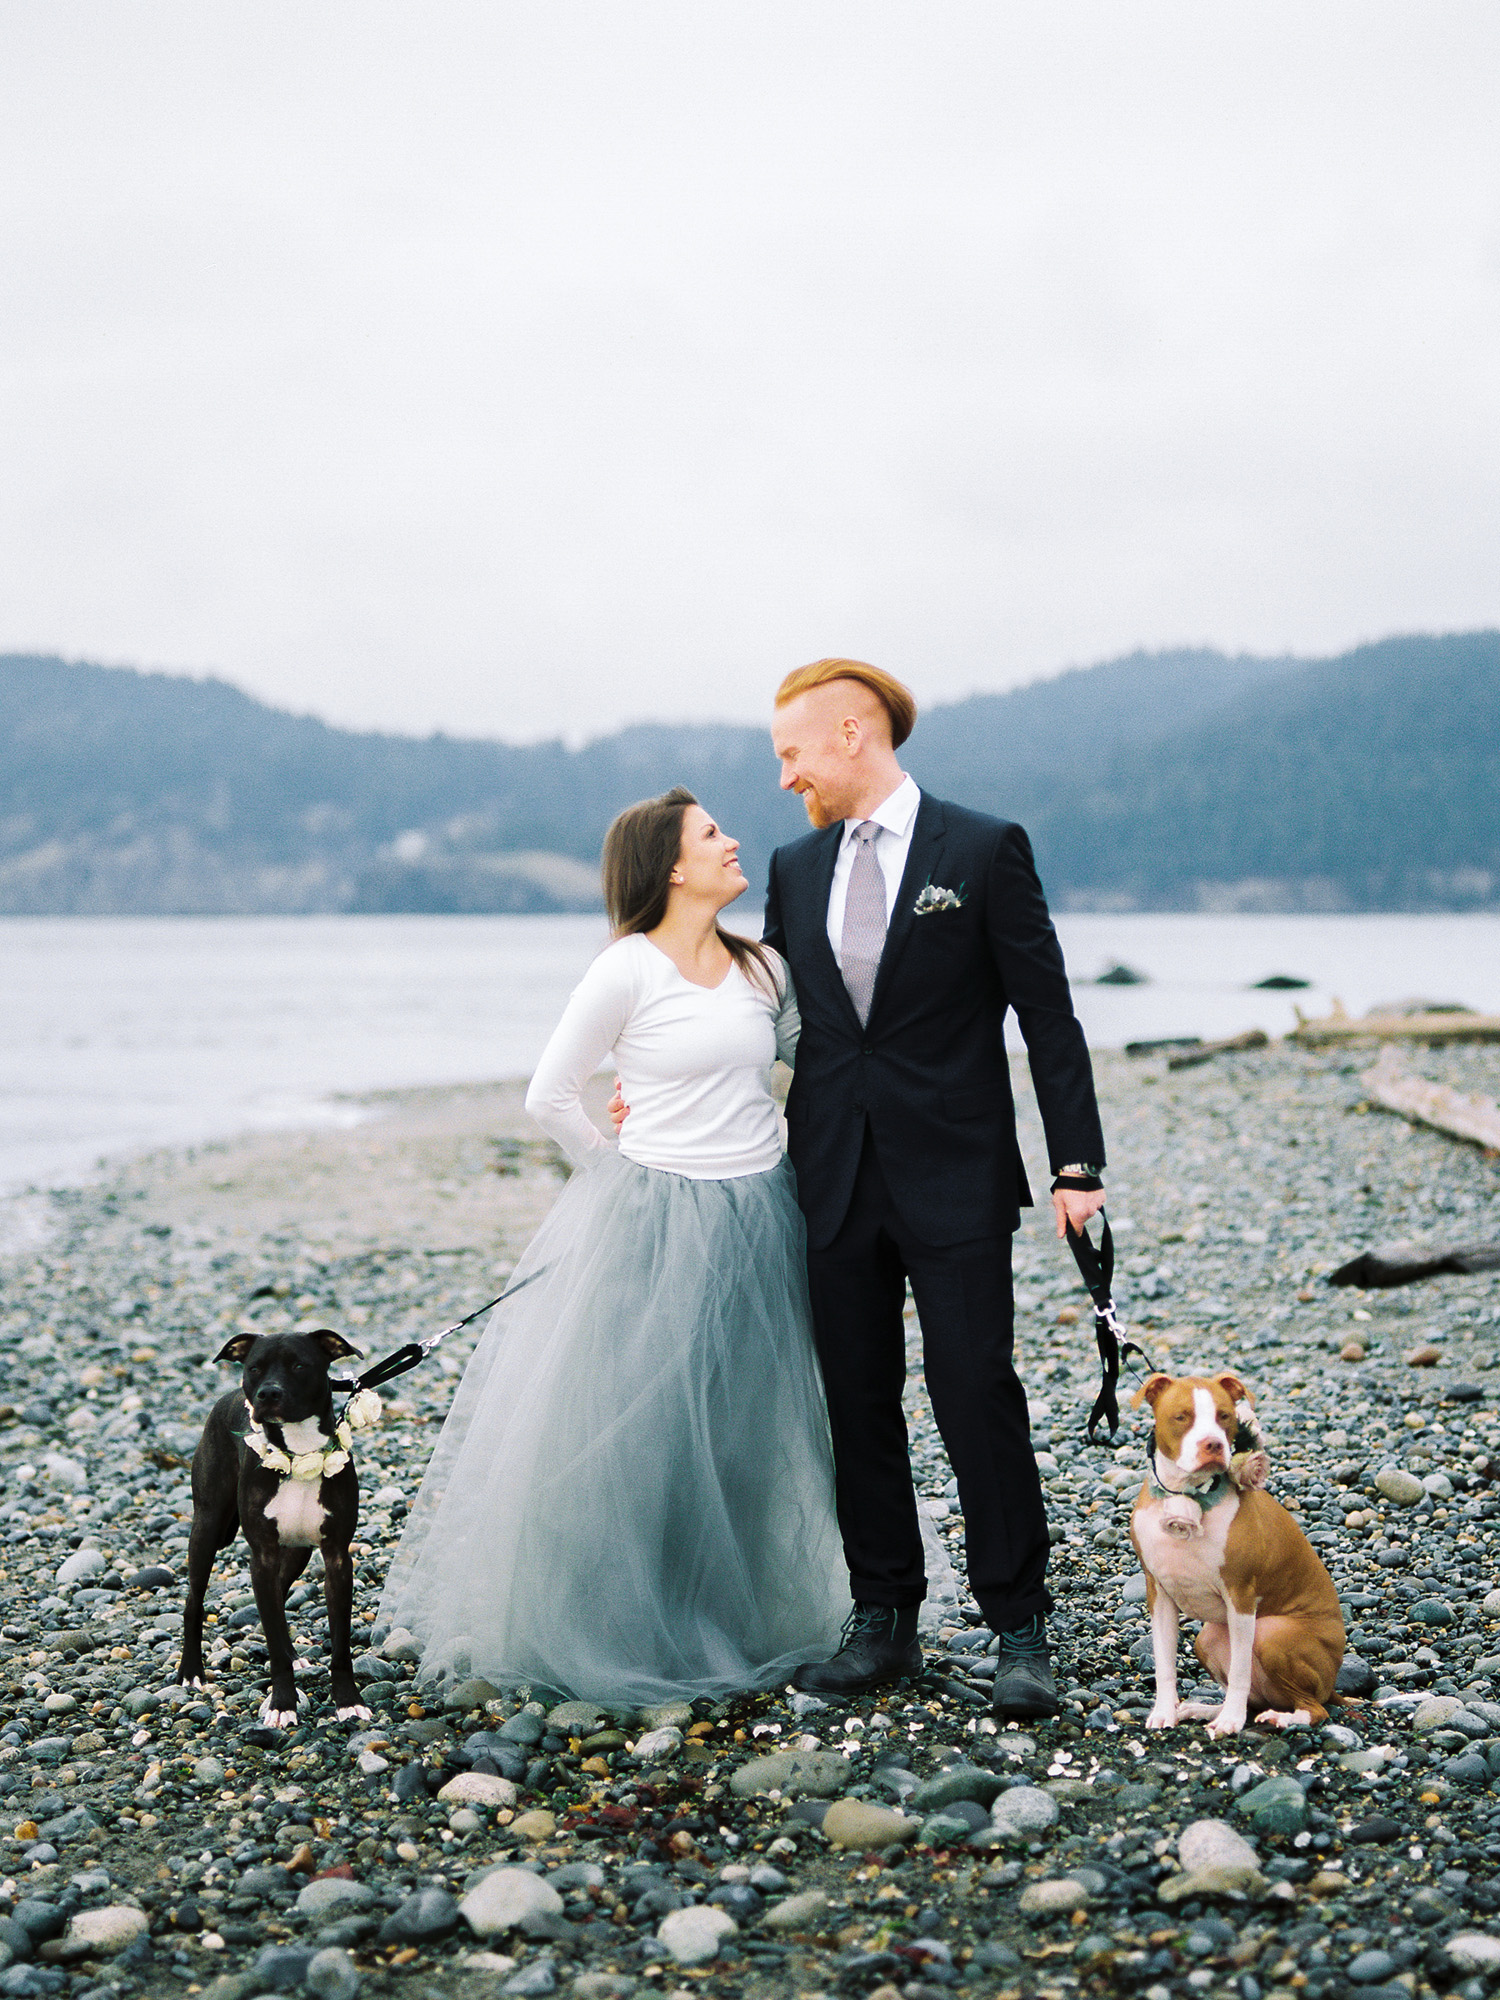 Seattle Area Beach Engagement Session with Dogs.jpg